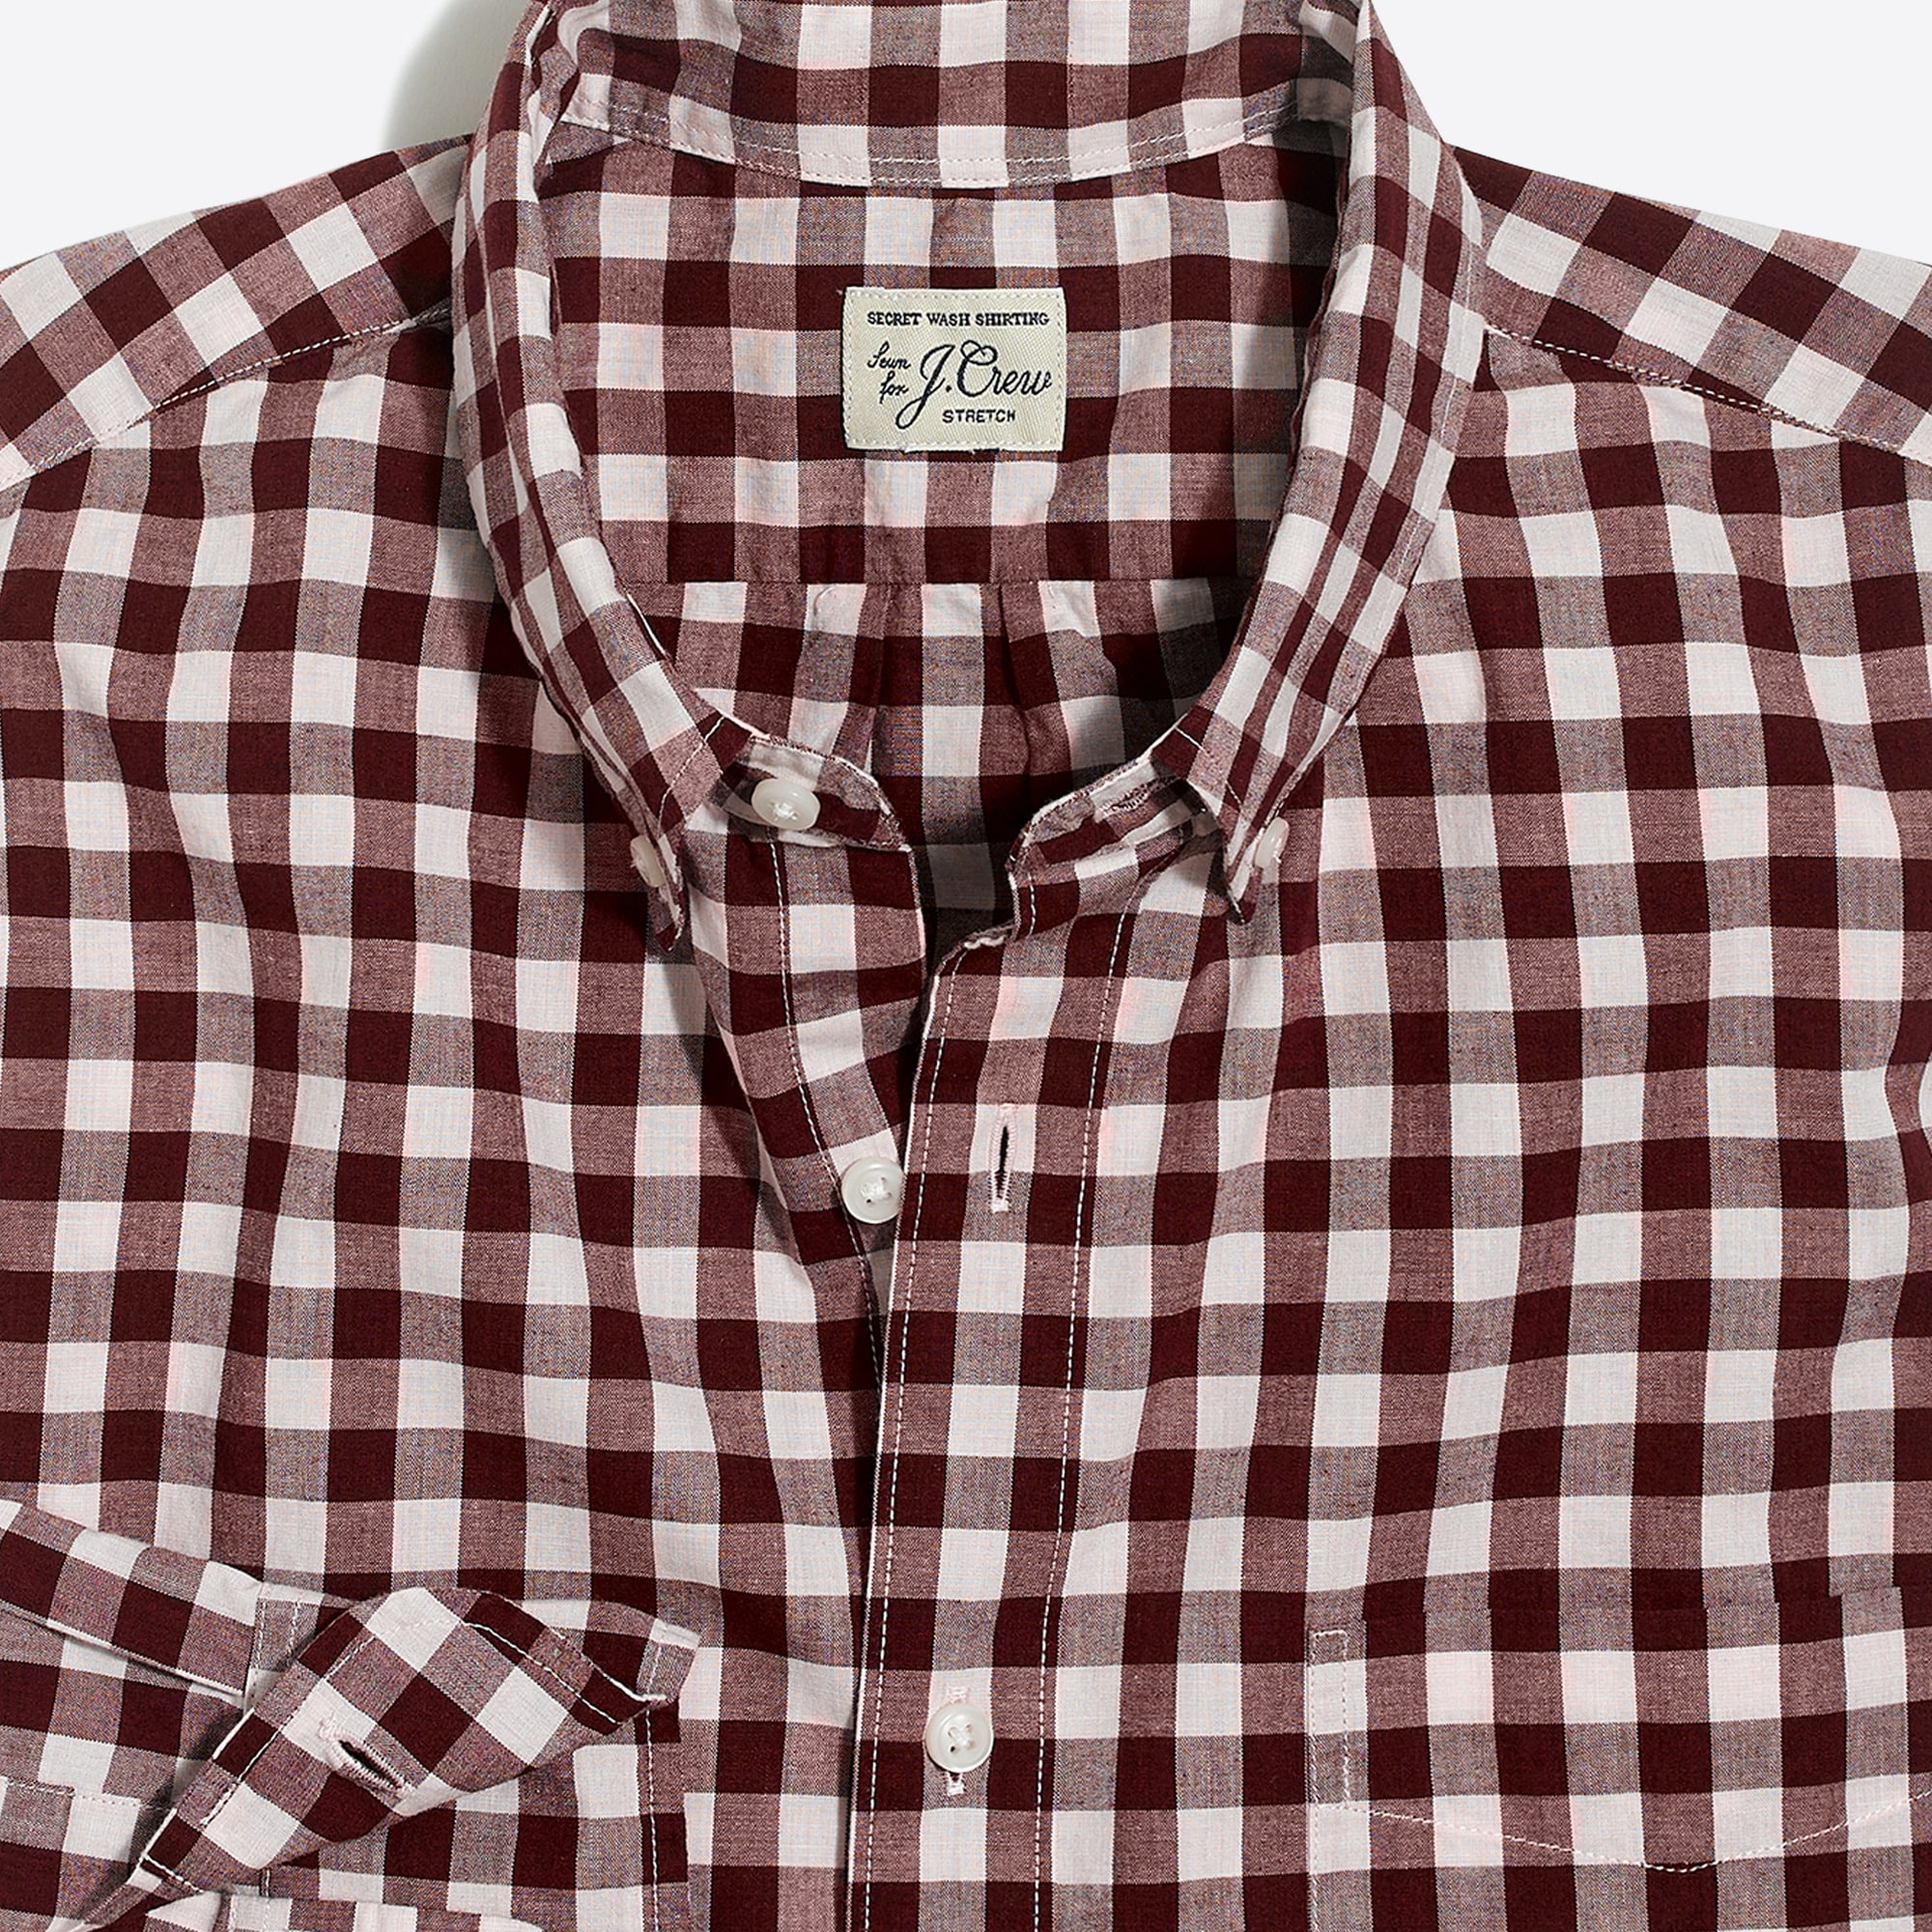 Image 5 for Slim stretch Secret Wash shirt in heather poplin gingham